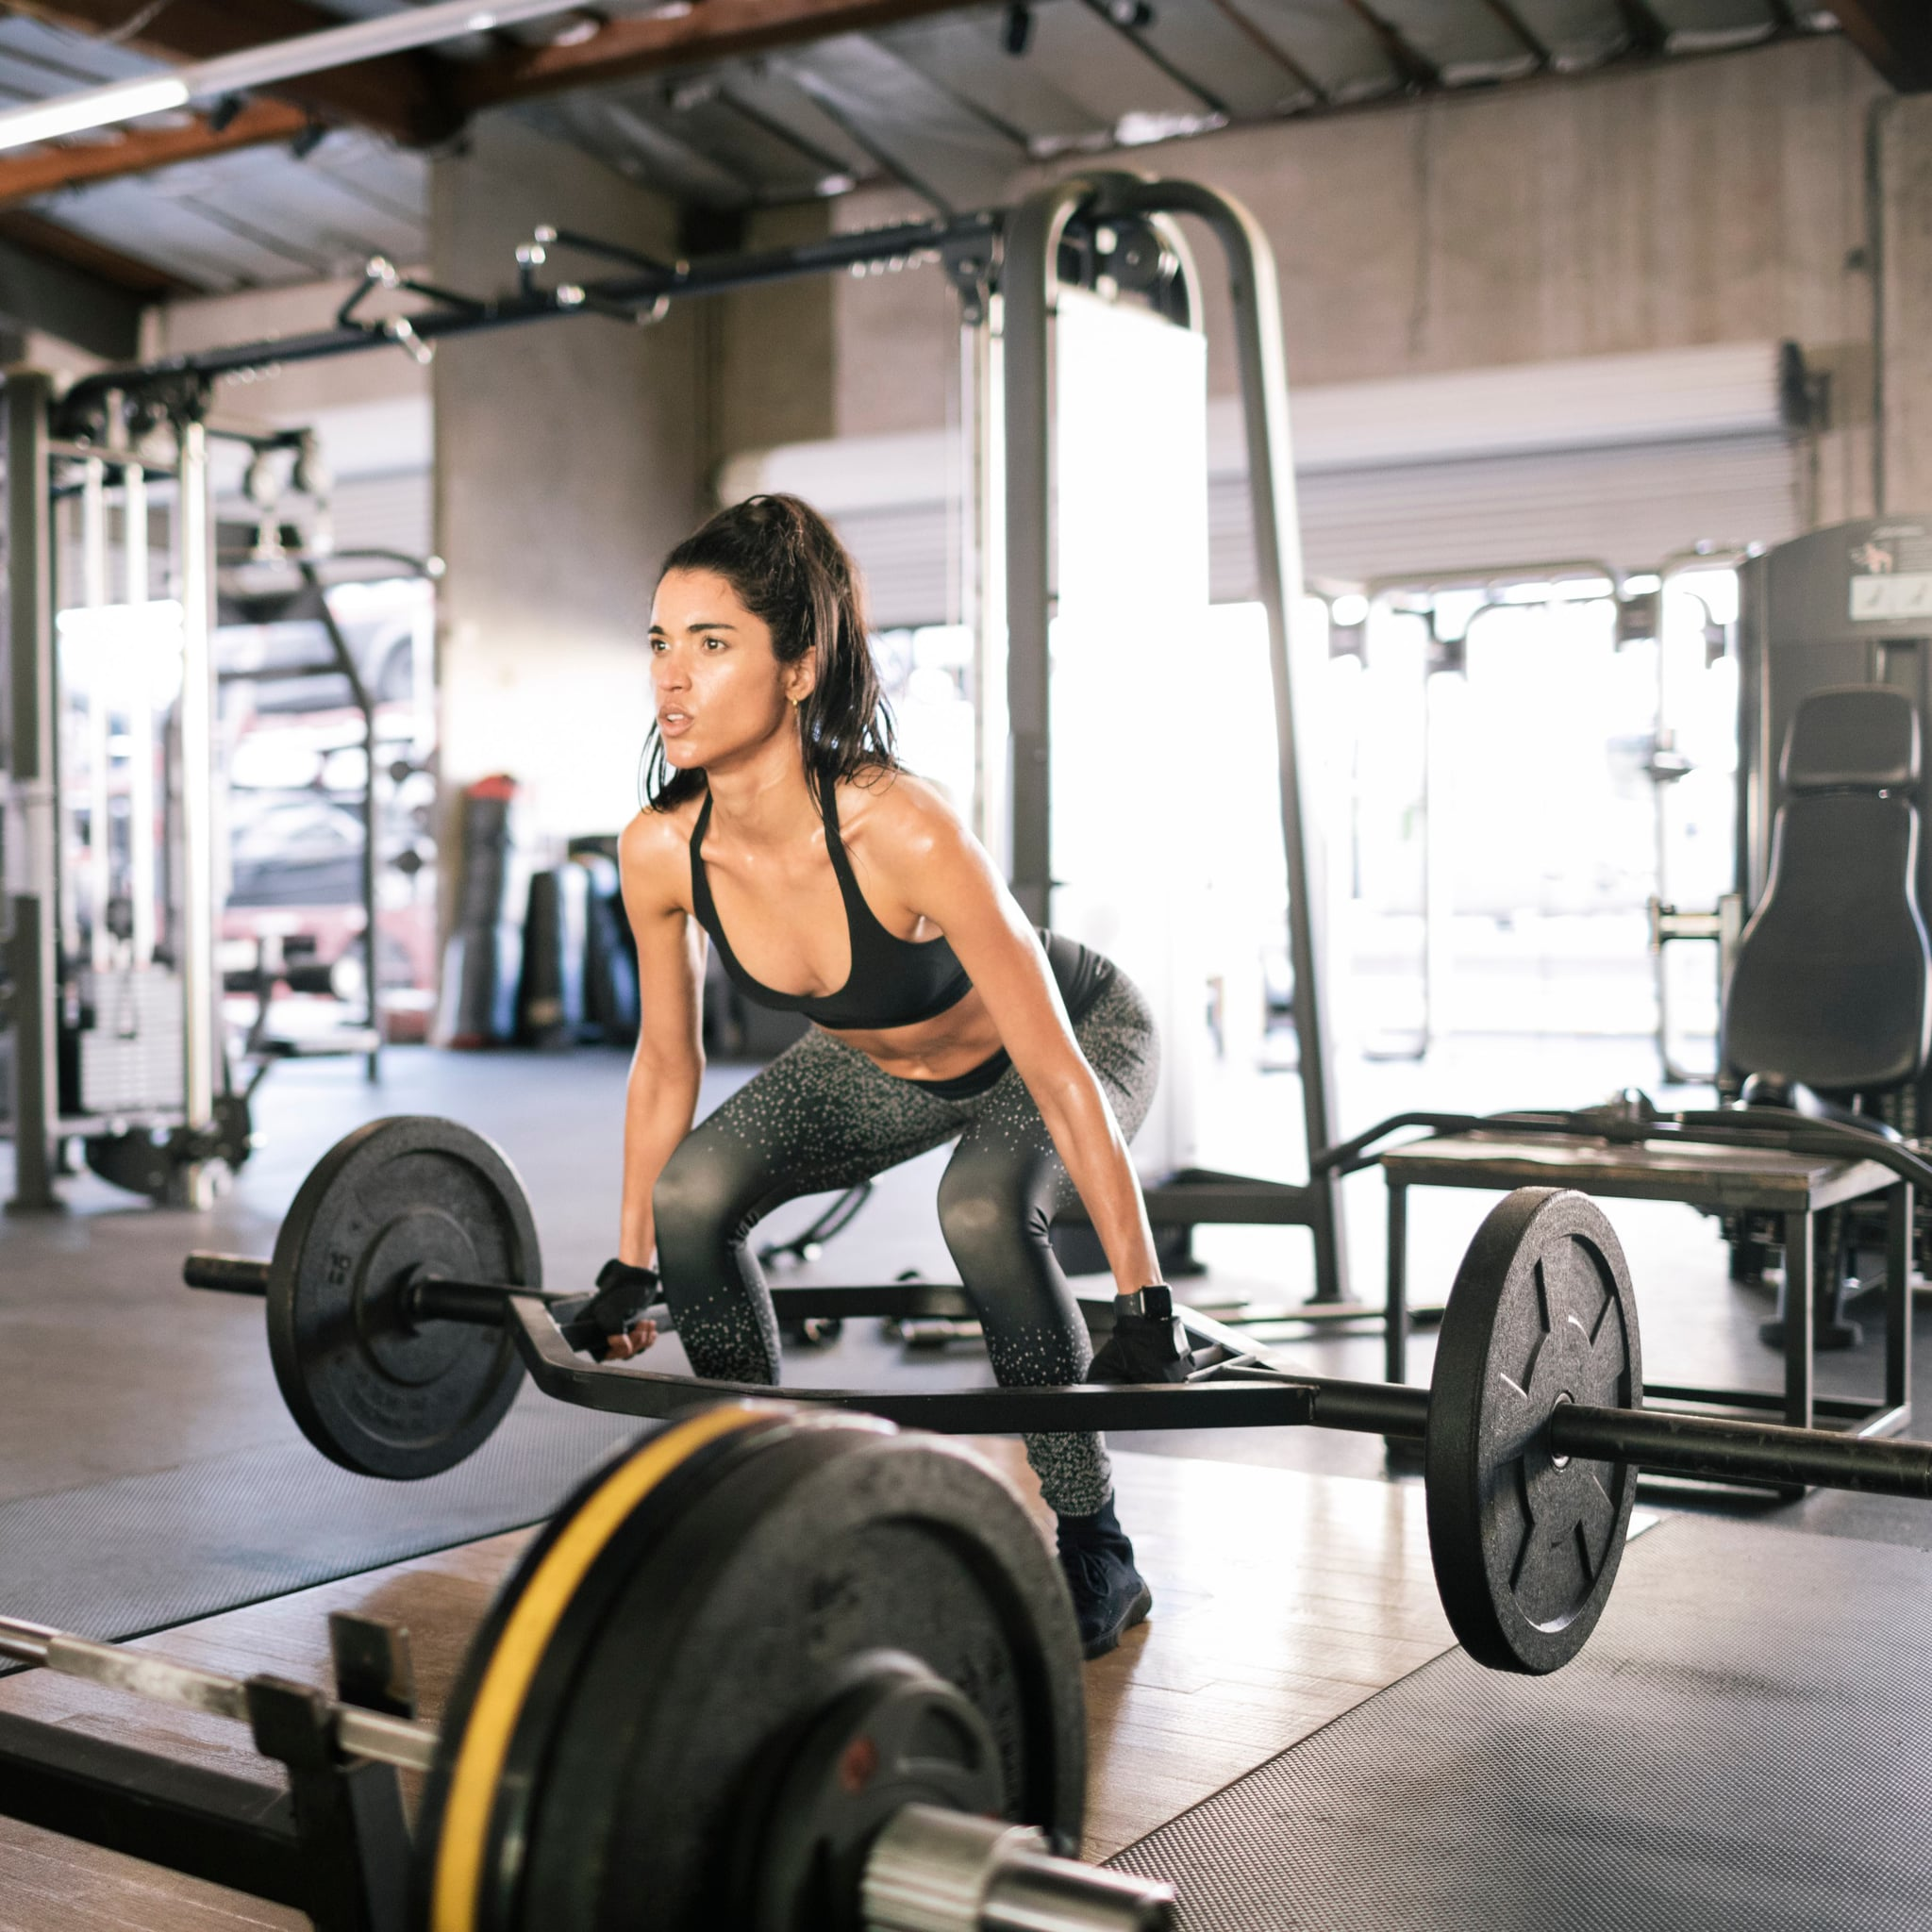 Can i gain muscle without lifting heavy weights